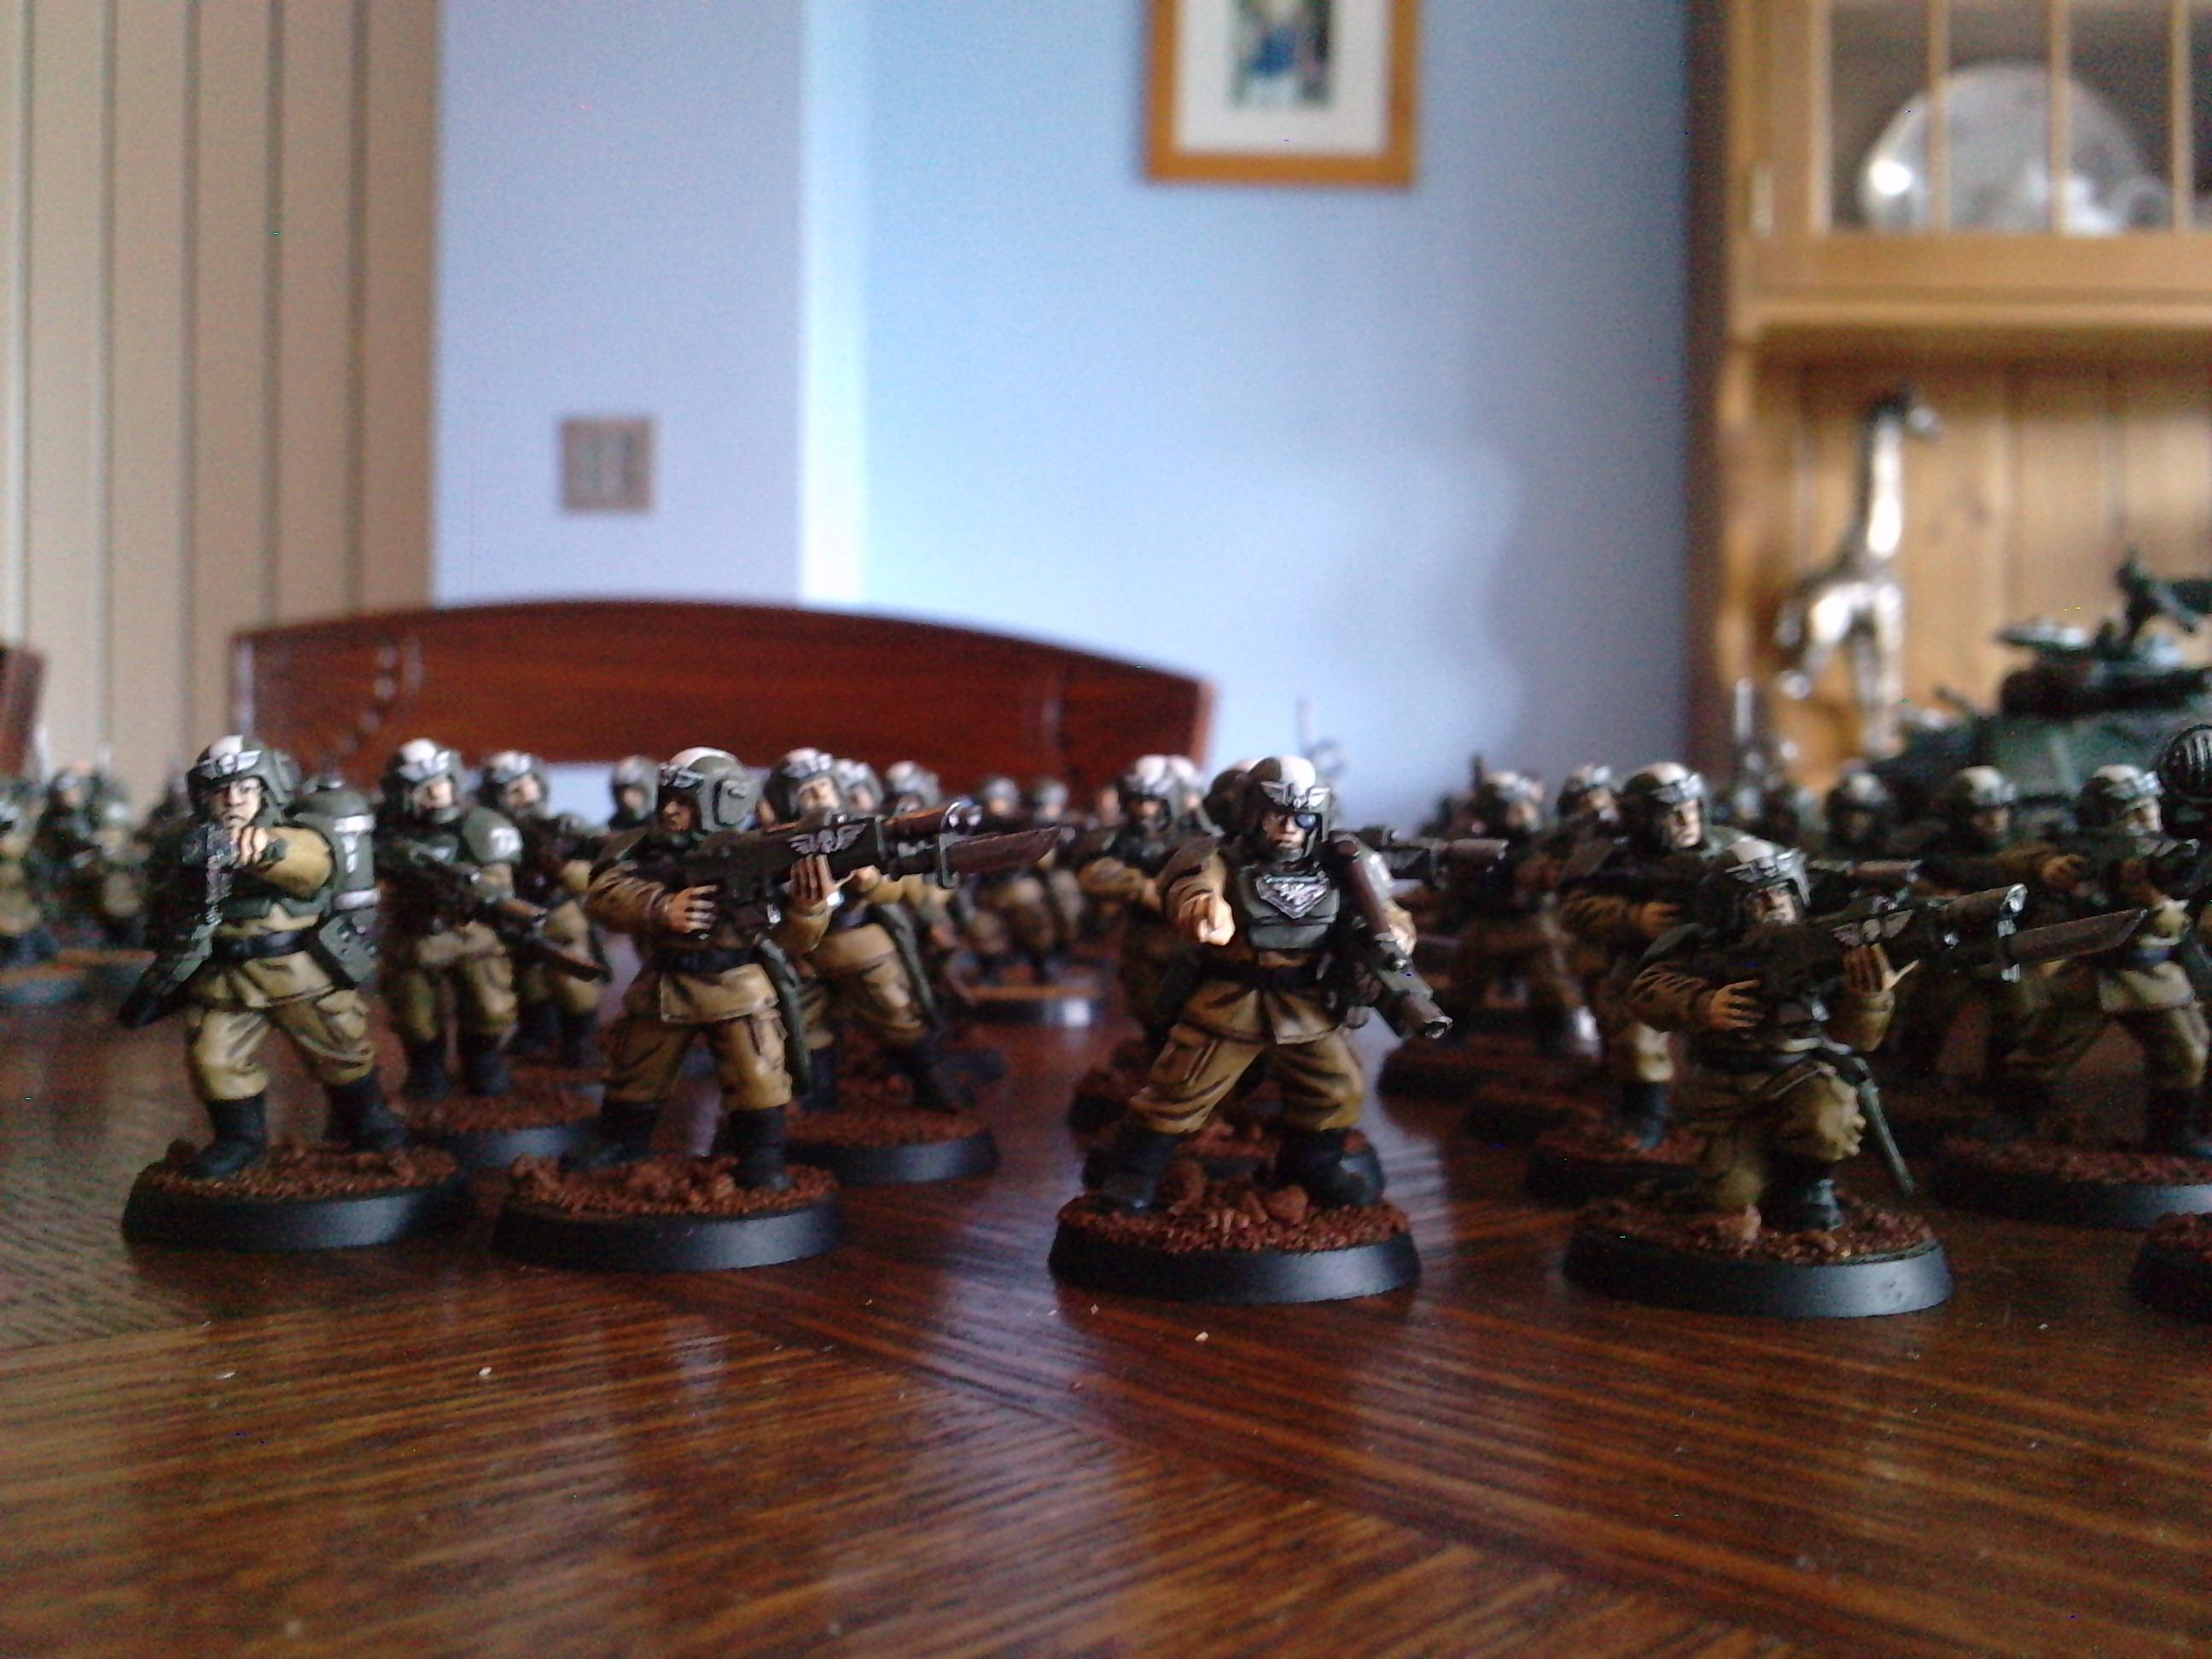 Cadians, Conscripts, Imperial Guard, Warhammer 40,000